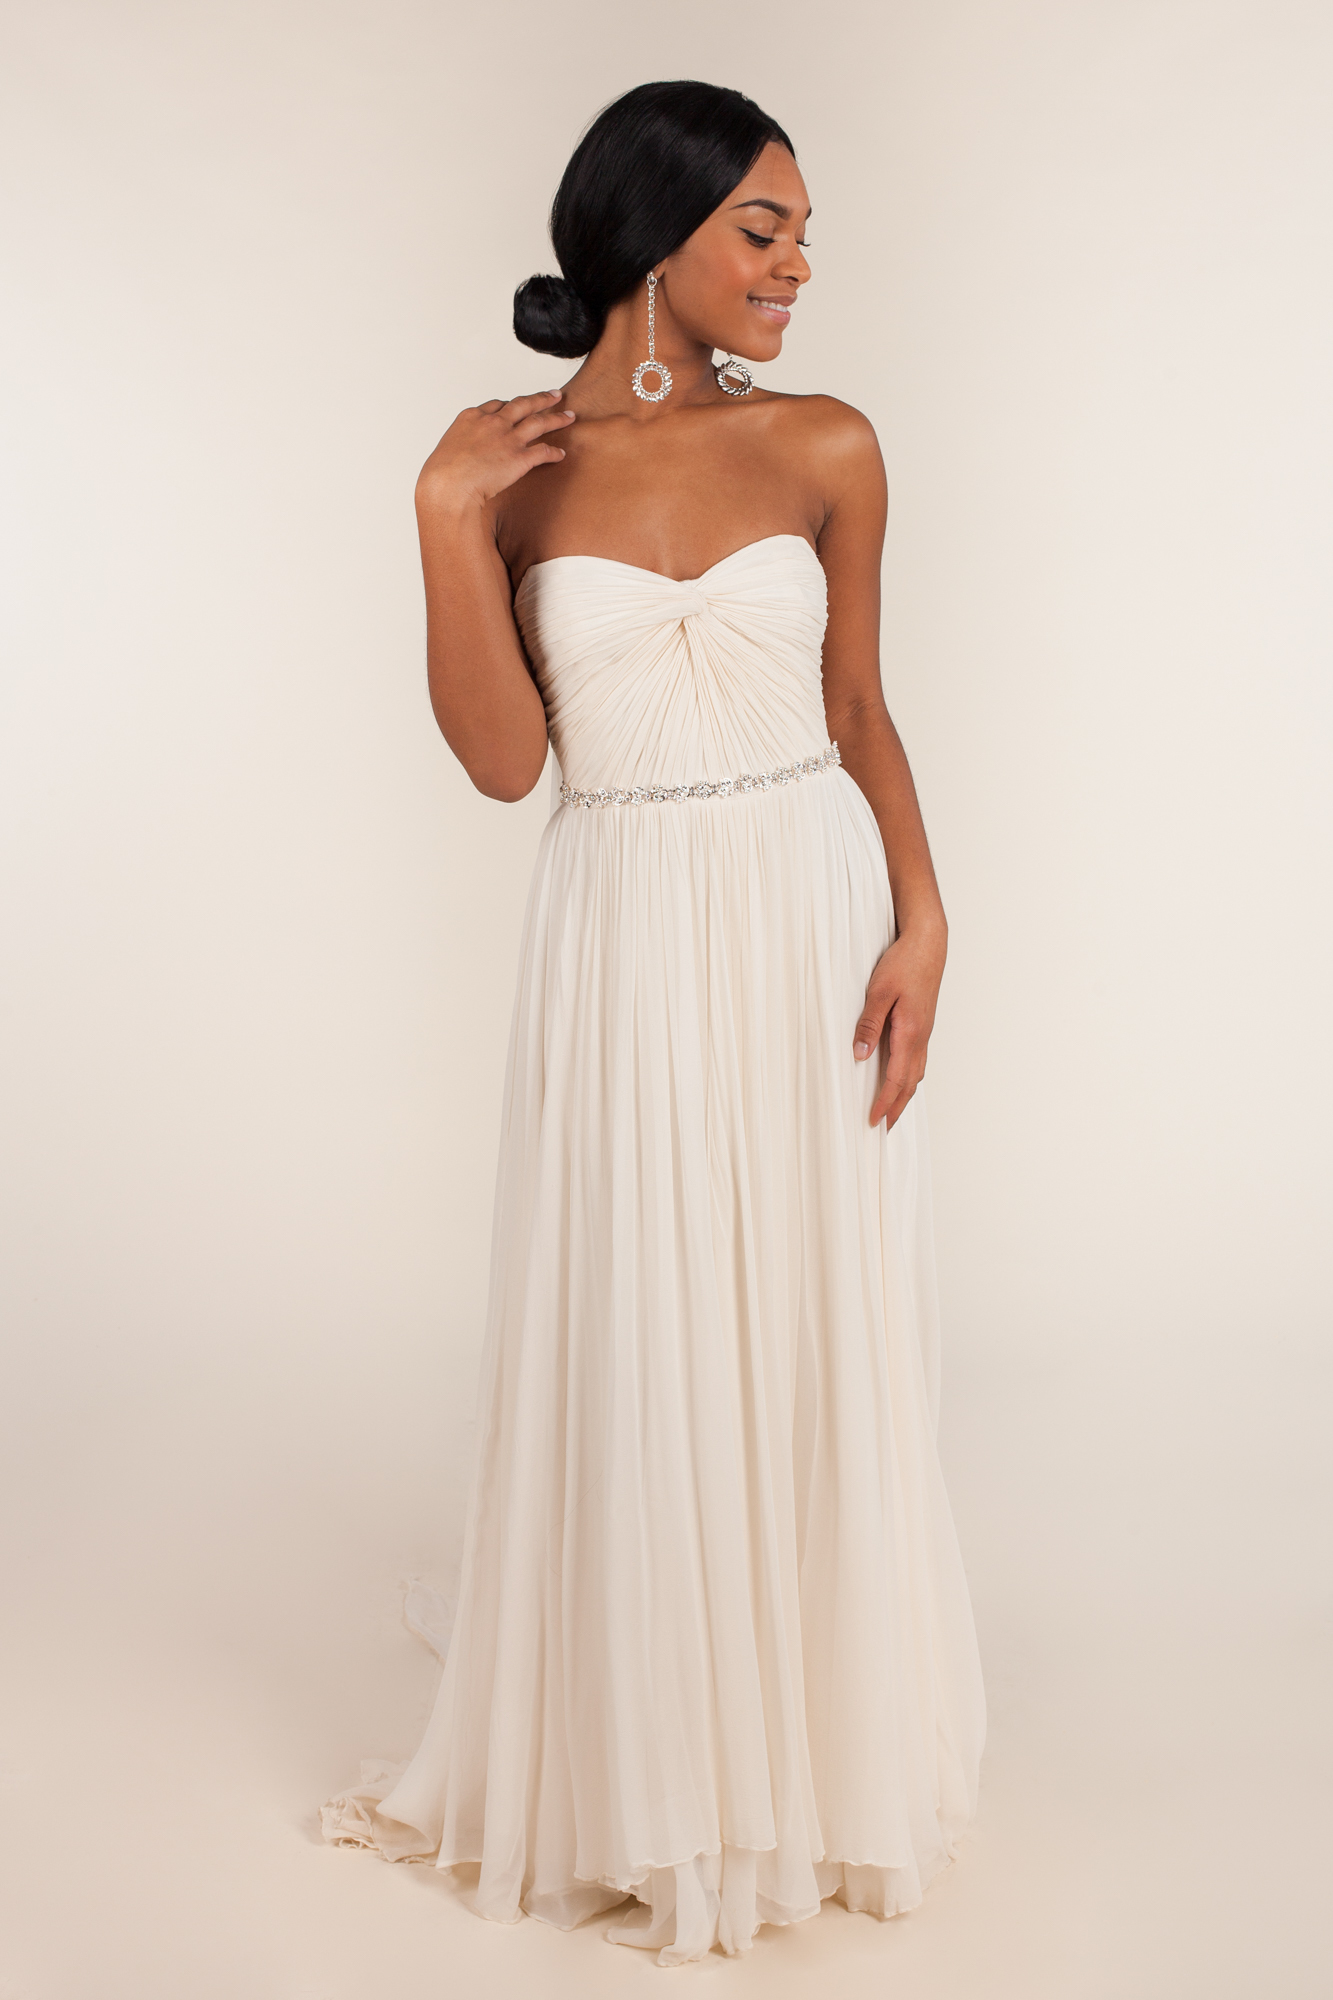 Monique lhuillier size 8 - $2200 - (45% OFF)